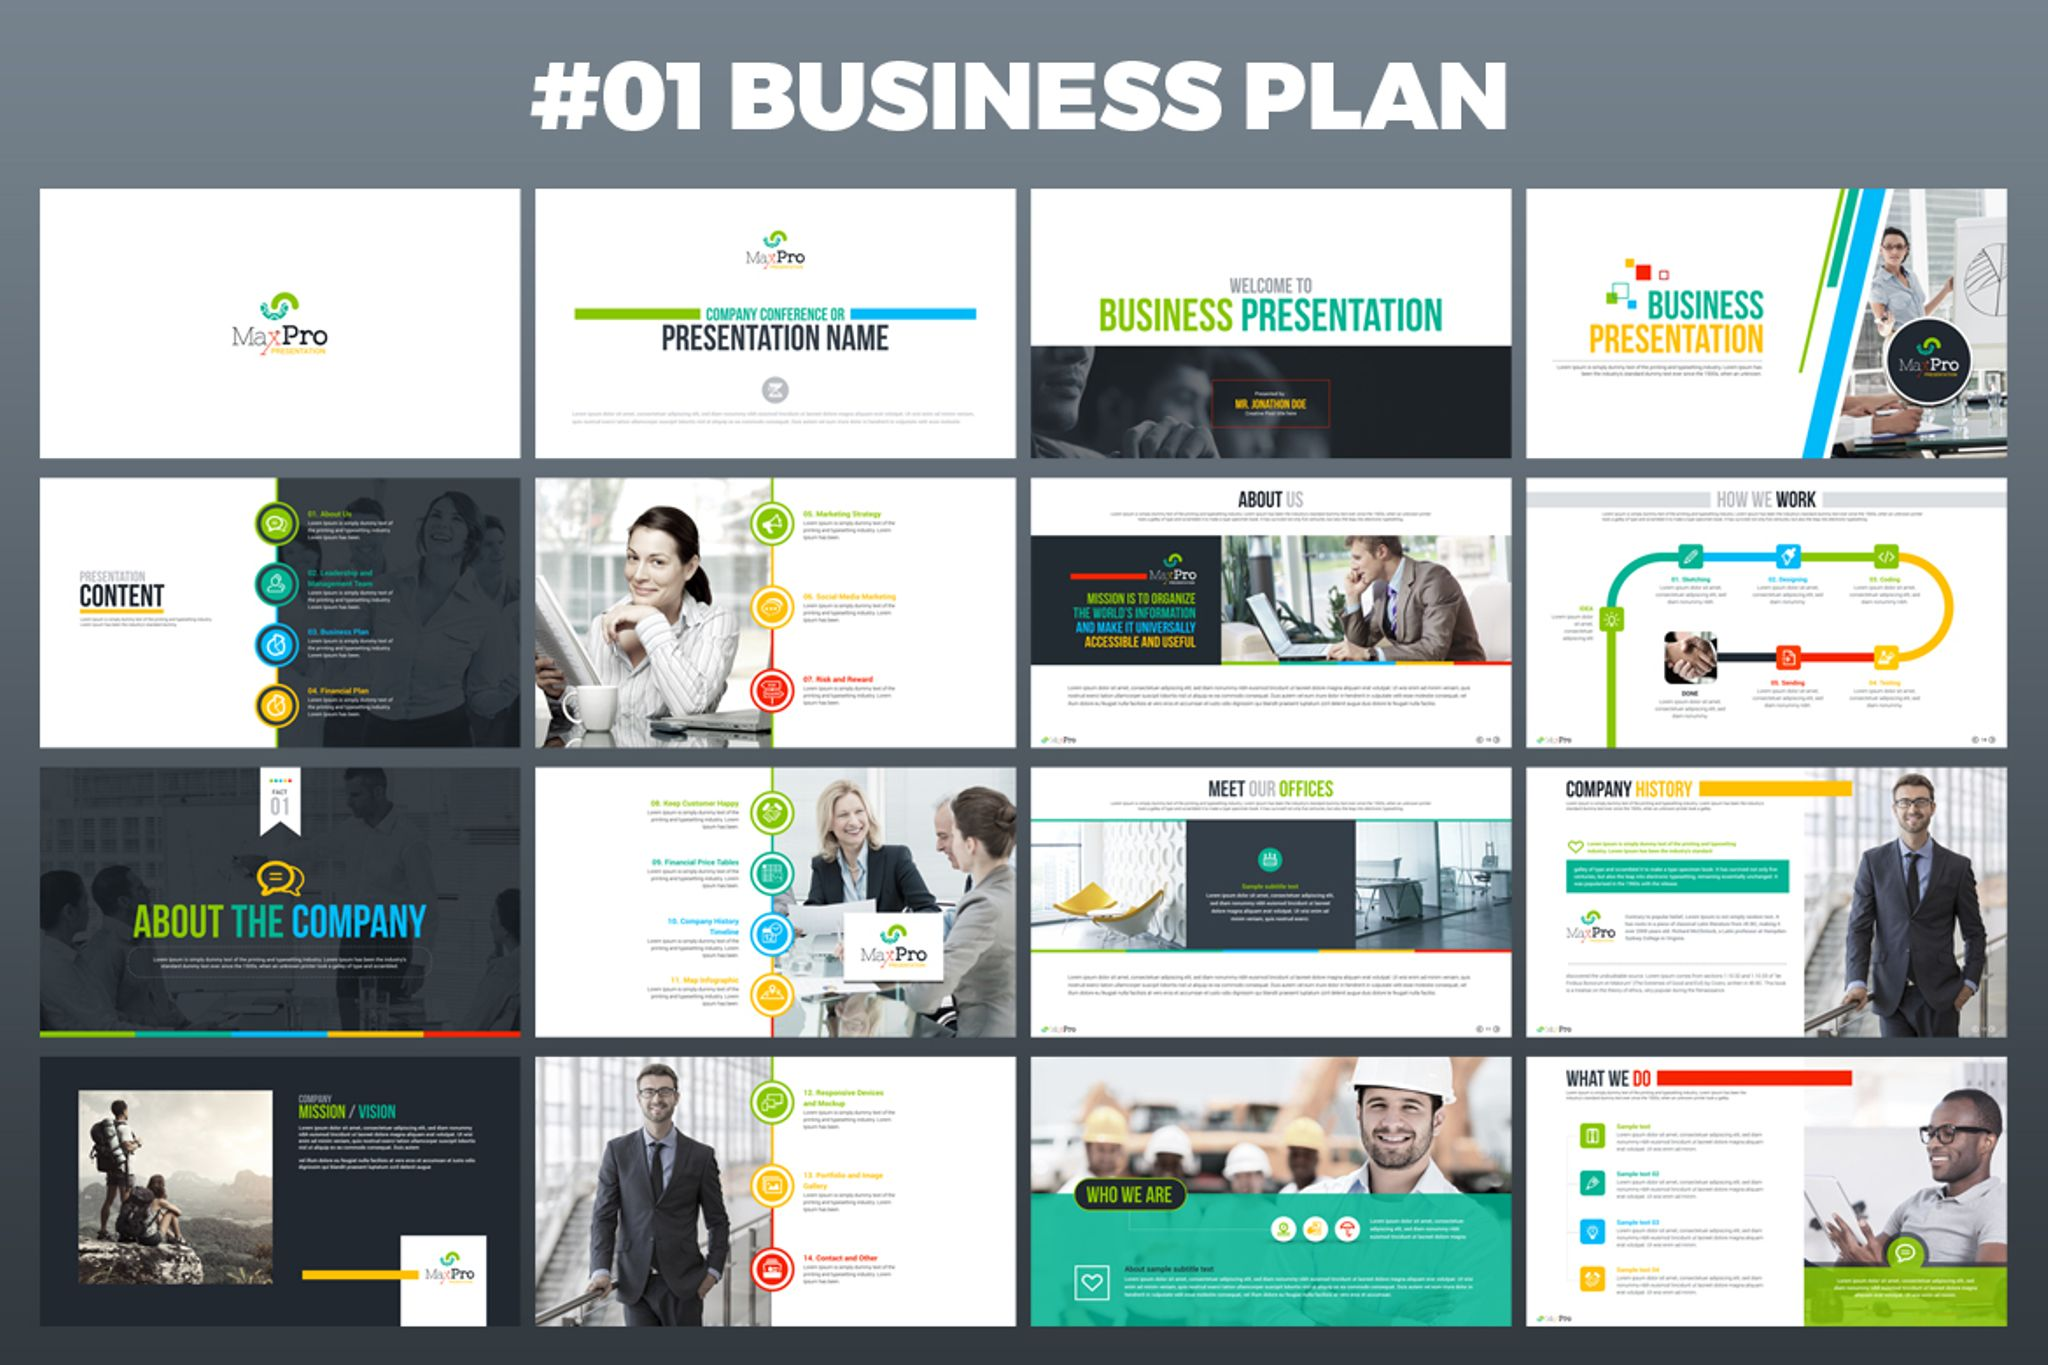 maxpro business plan powerpoint template 66751